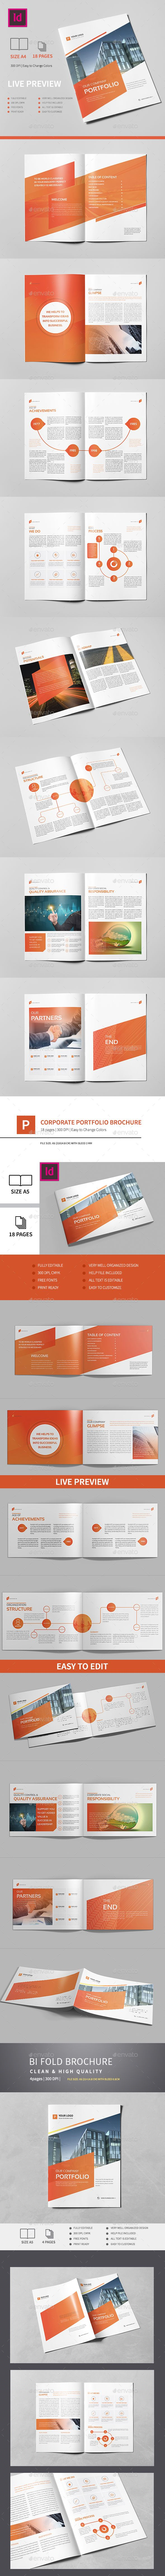 3 High Quality InDesign  Brochure Templates • Download ➝ https://graphicriver.net/item/brochure-bundle-3x1-save-50/17013030?ref=pxcr